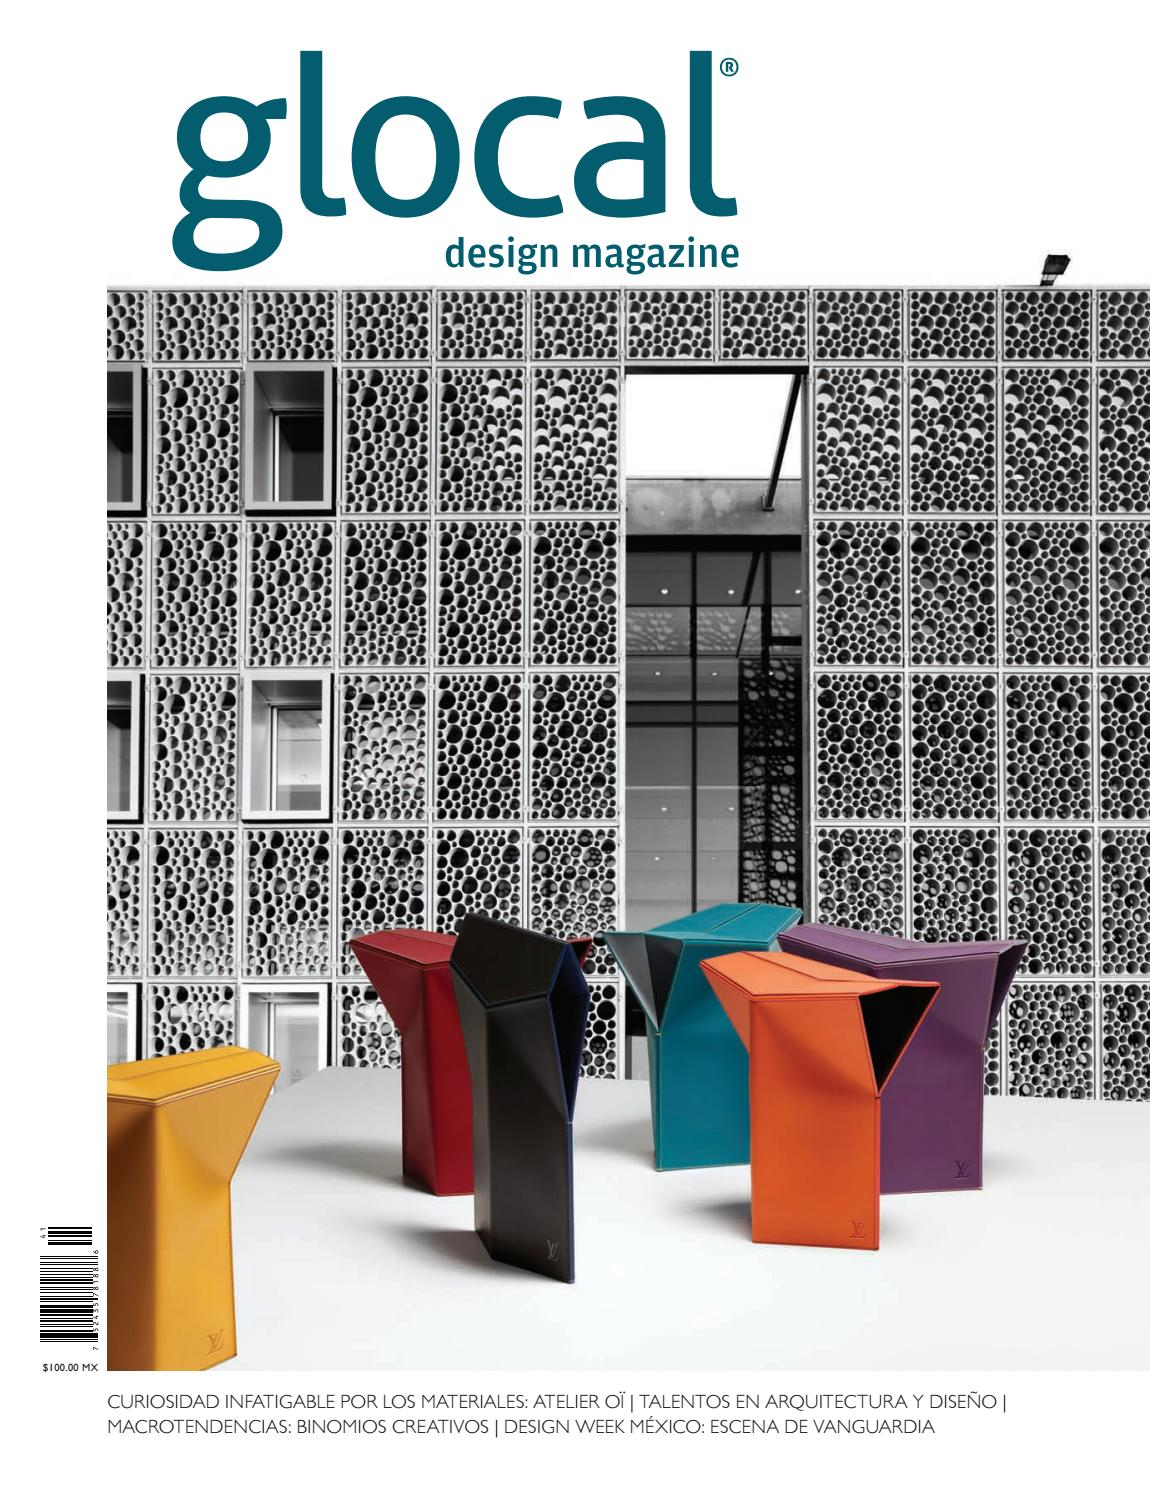 Ad Hoc Muebles Veracruz - Glocal Design Magazine No 41 Portada Por Cover By Atelier O [mjhdah]https://i.pinimg.com/736x/ca/25/7b/ca257b5983af9f7e593072cf6560ed58–lounge-furniture-home-furniture.jpg